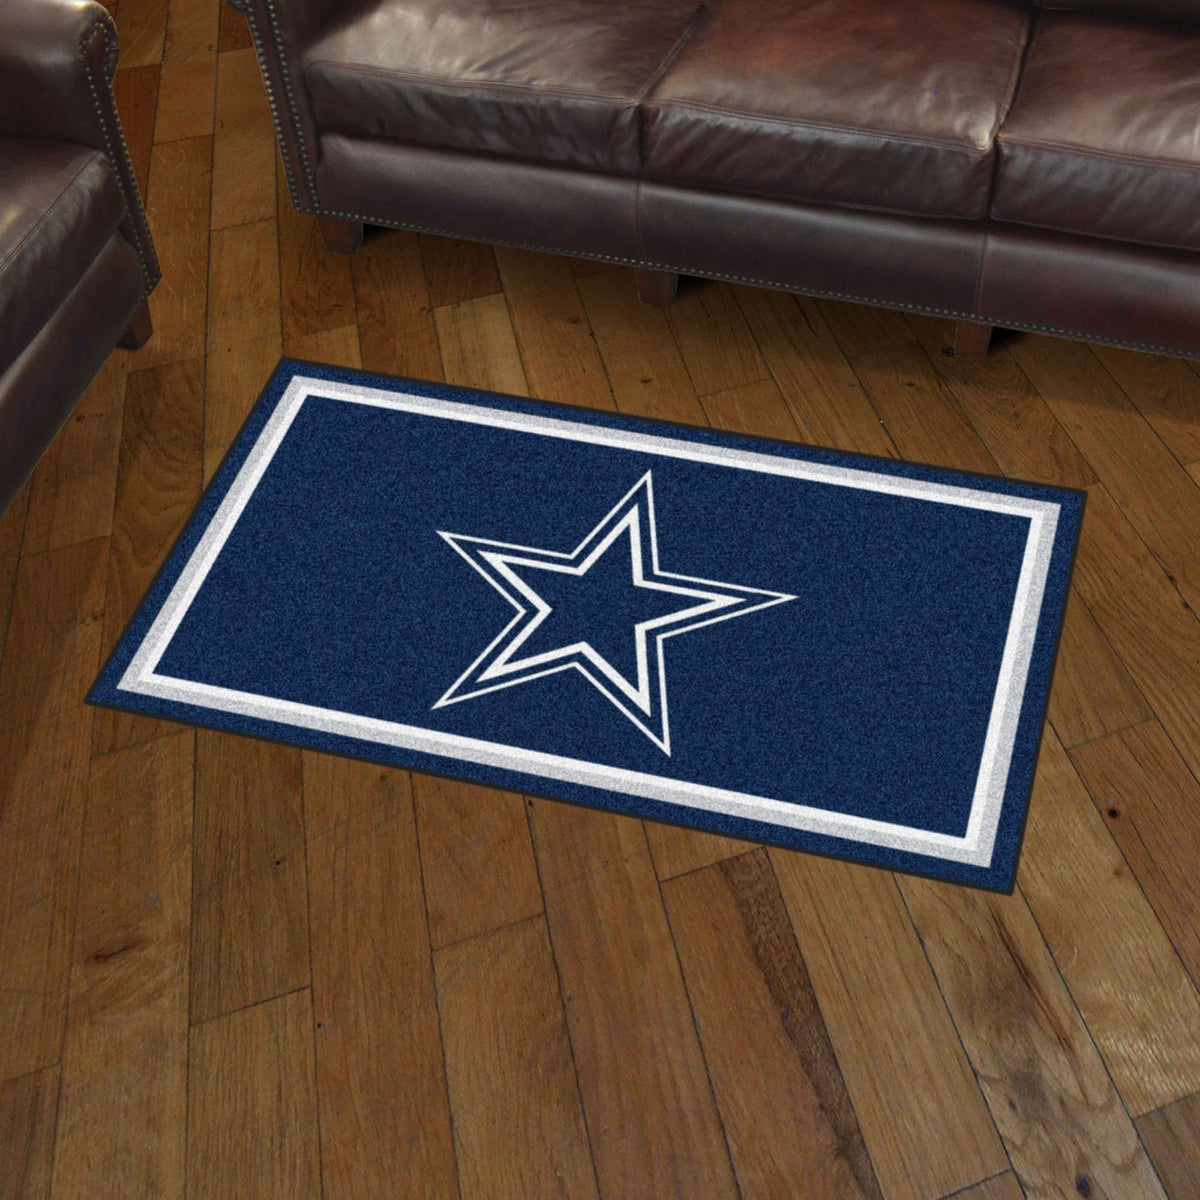 NFL - 3' x 5' Rug NFL Mats, Plush Rugs, 3x5 Rug, NFL, Home Fan Mats Dallas Cowboys